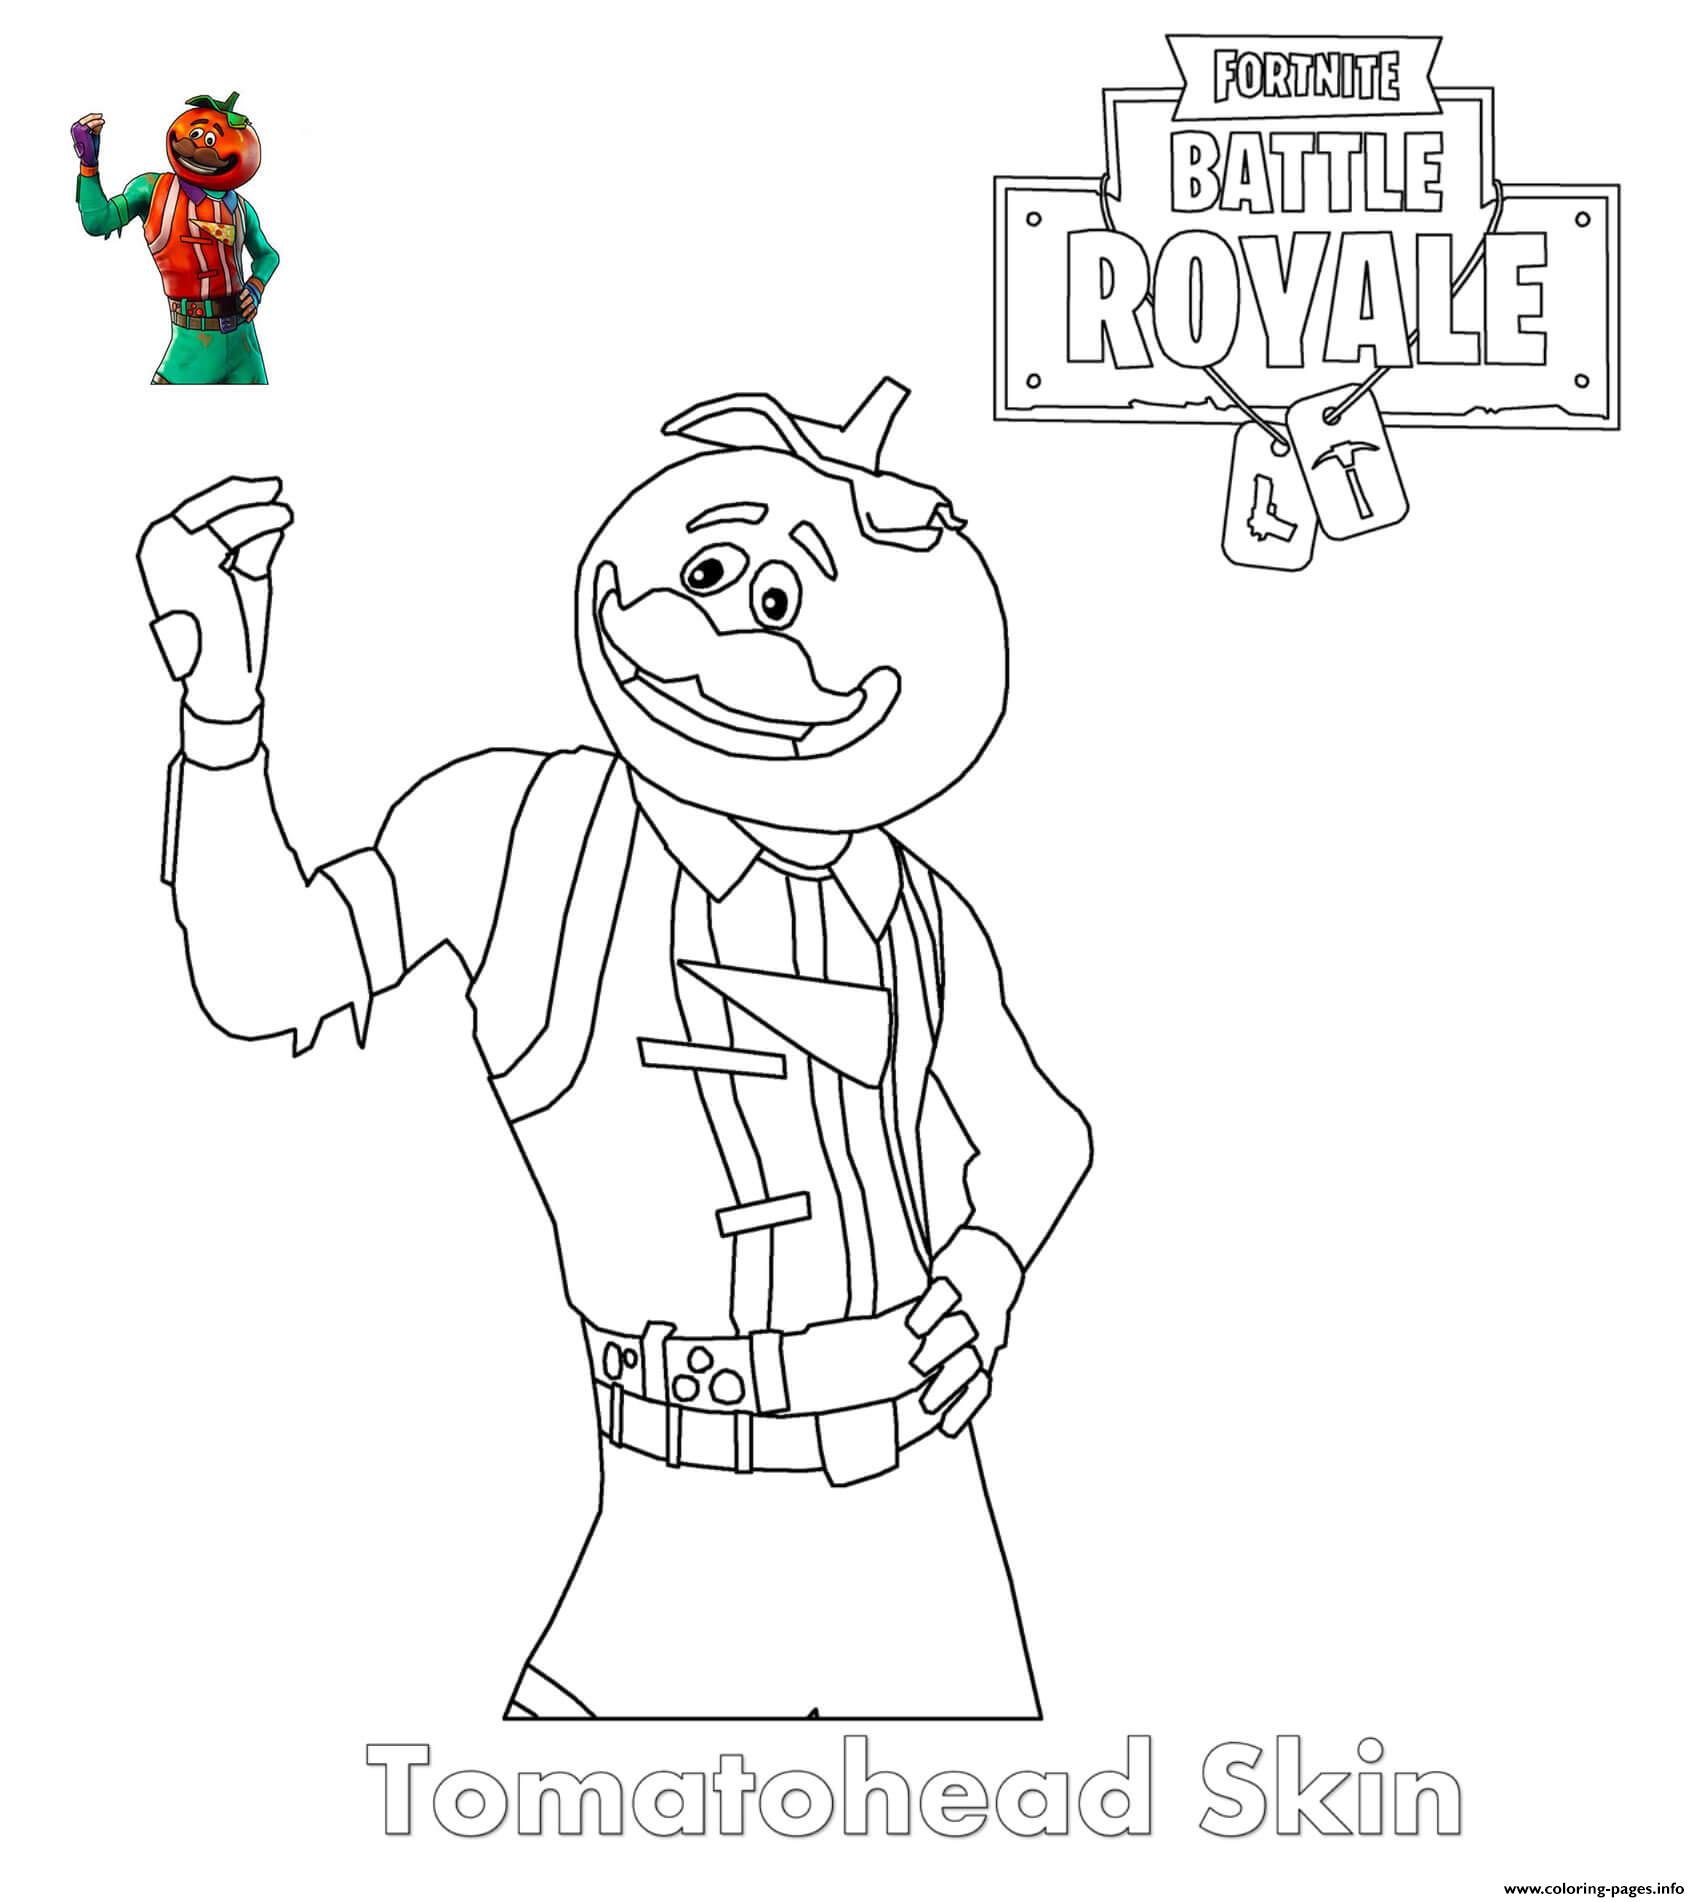 Tomatohead Skin Fortnite Coloring